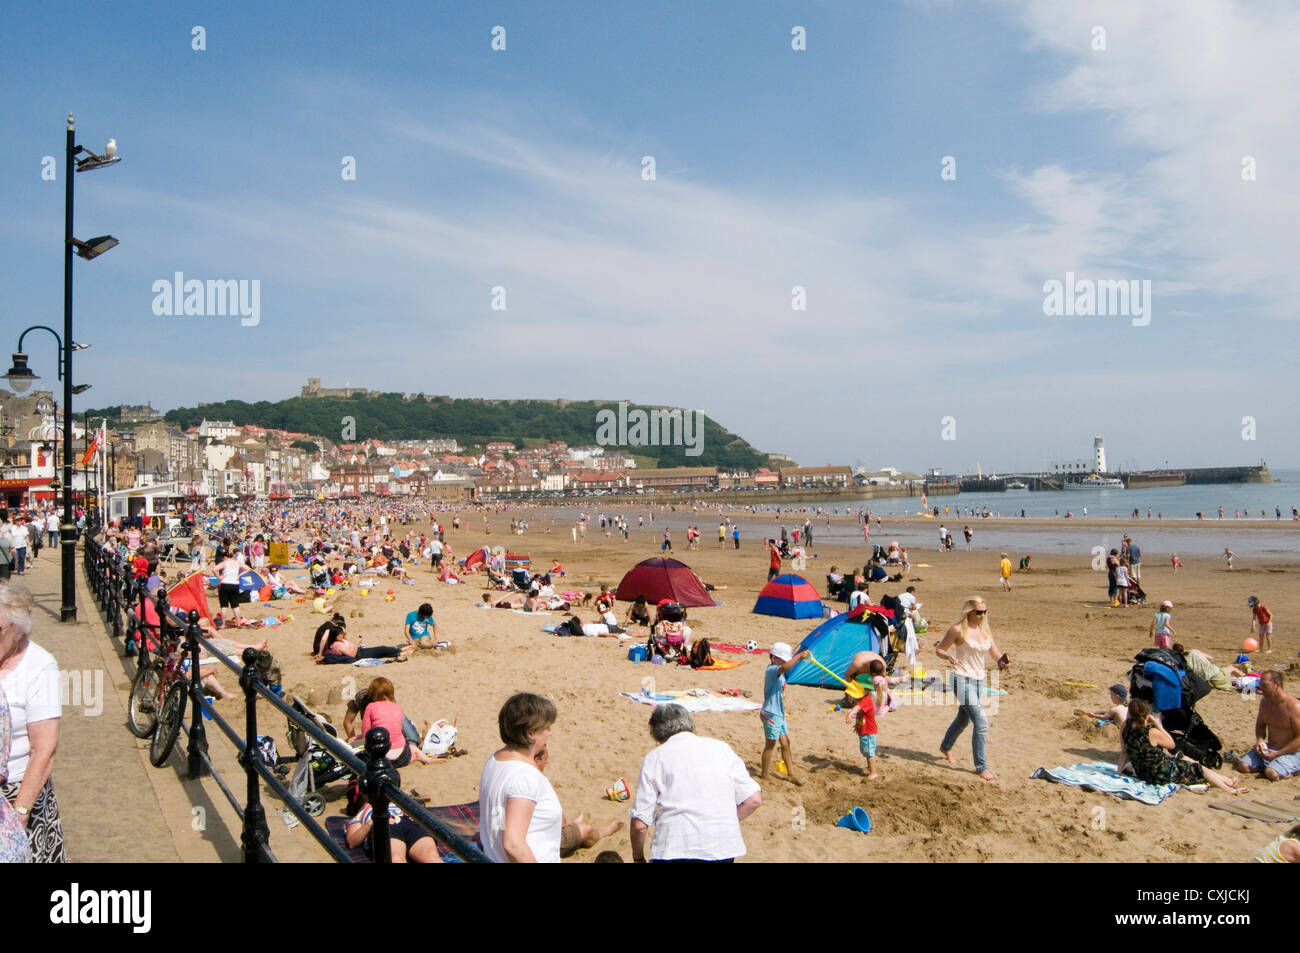 scarborough beach north yorkshire uk beaches sea north sand sandy summer warm weather - Stock Image